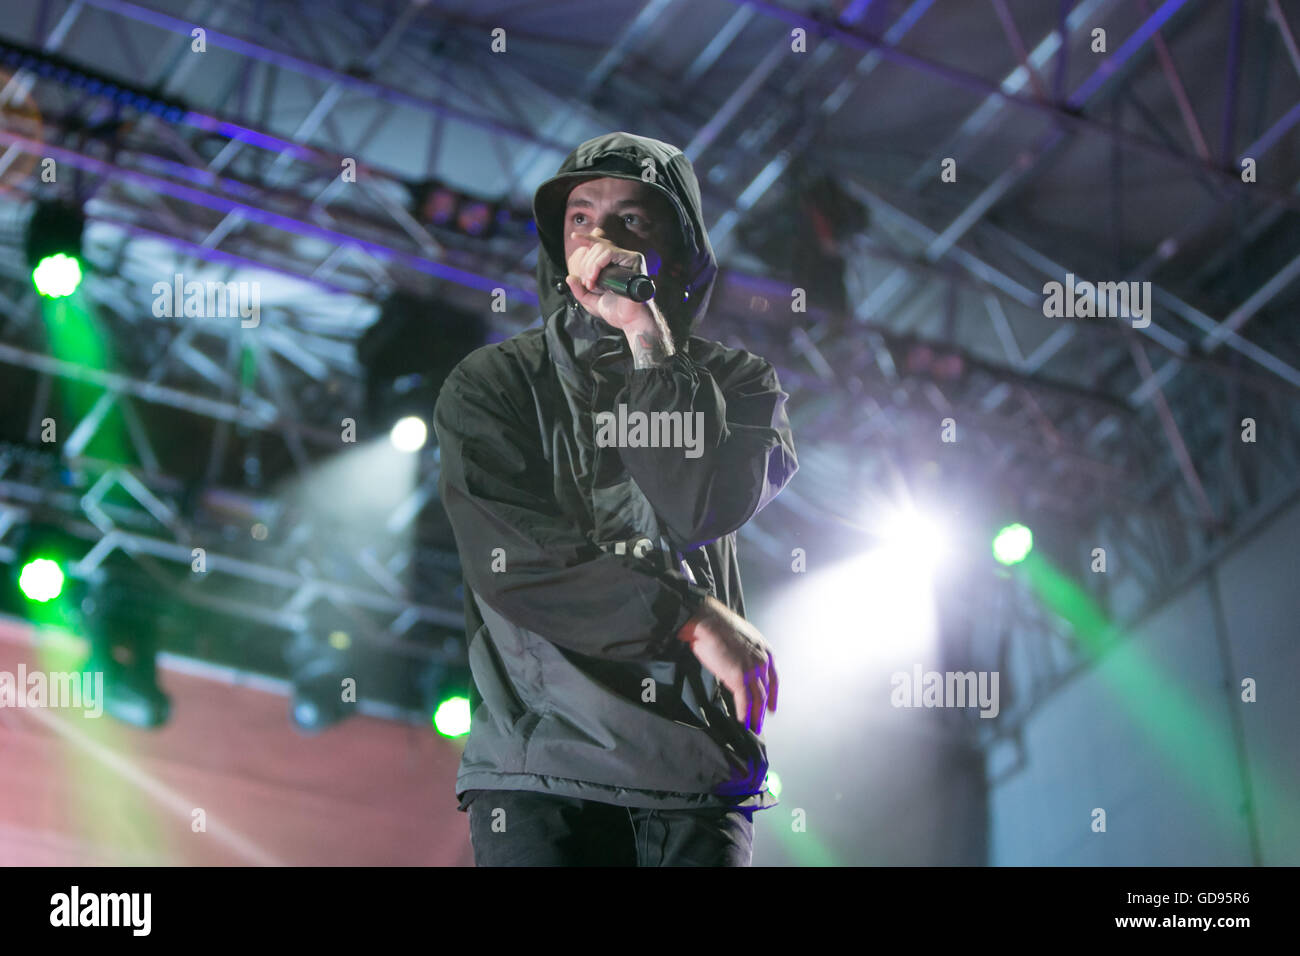 Collegno, Italy. 14th July 2016. flower festival, Collegno, Italy. 14 July 2016. the italian rapper Salmo performs Stock Photo